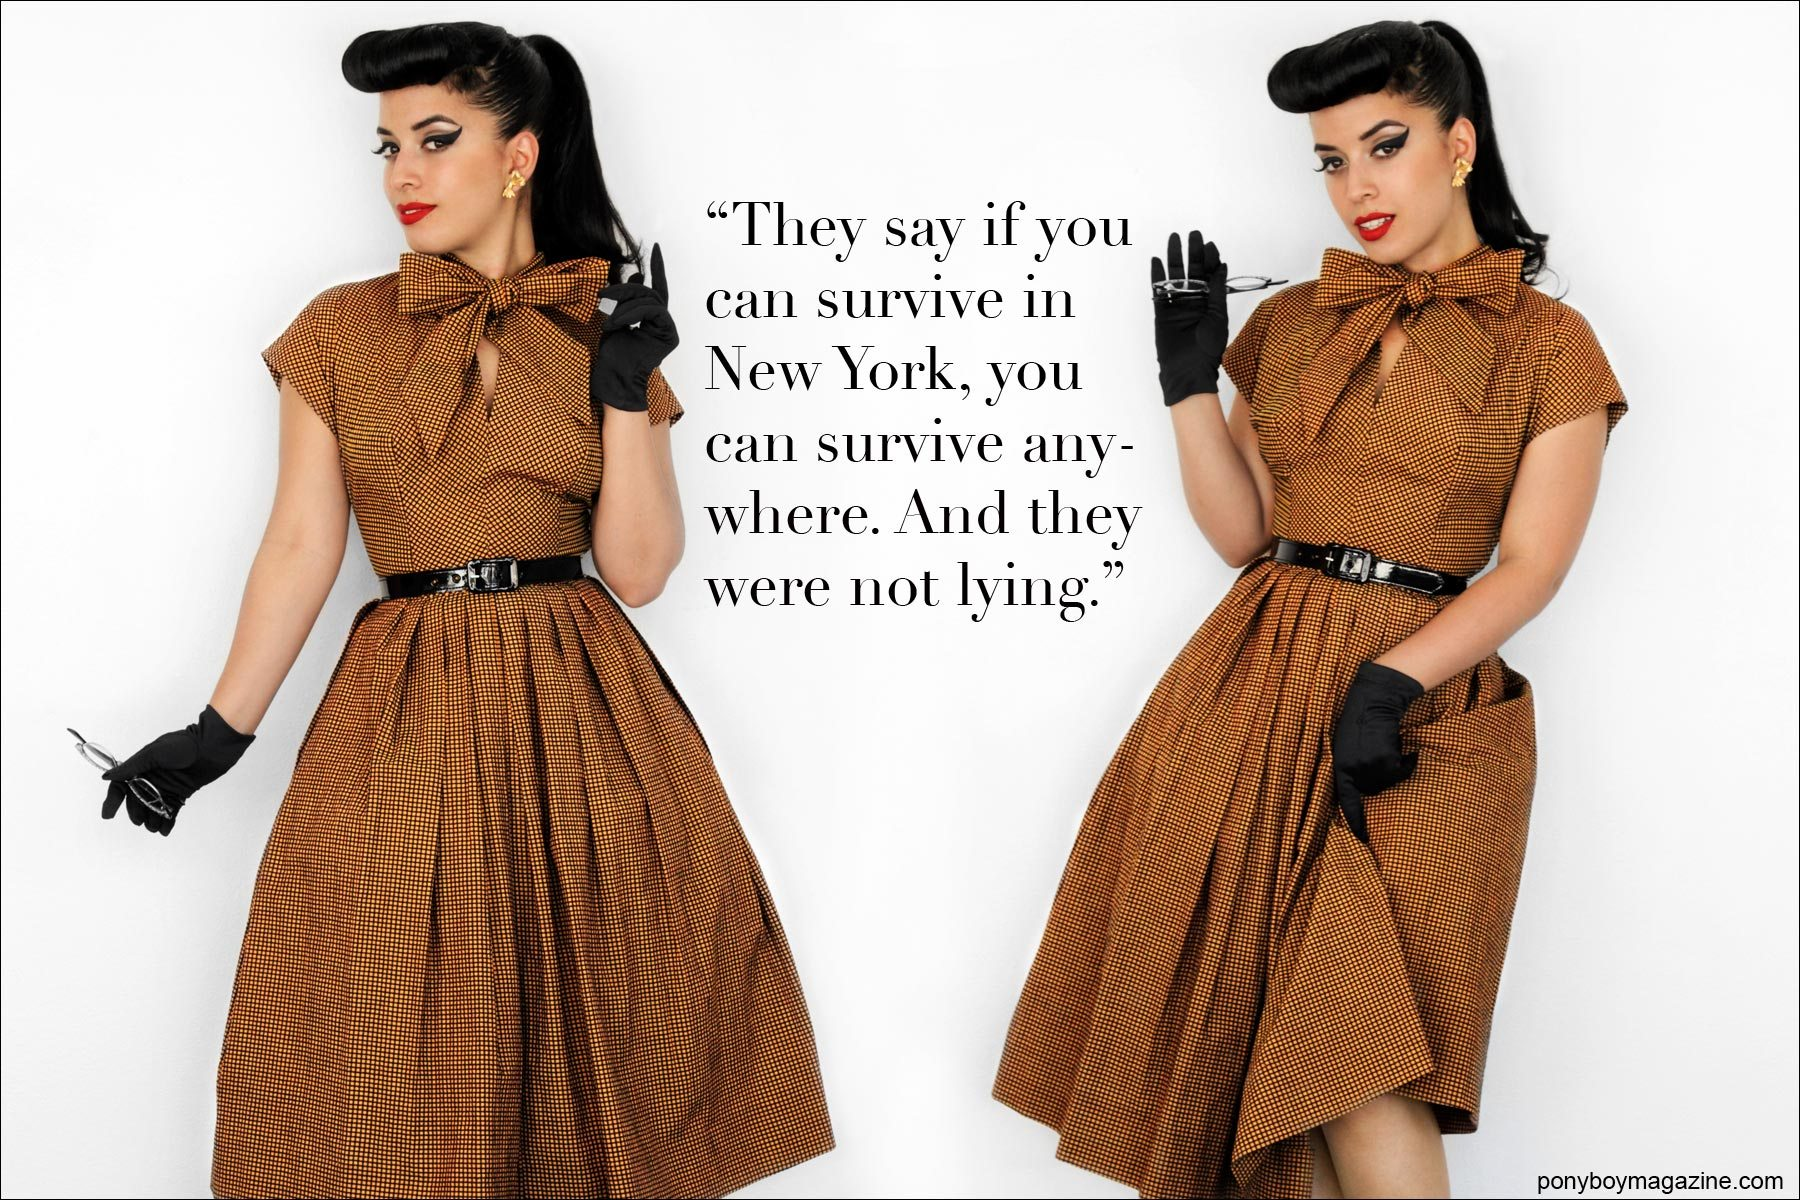 Vintage Vandal wears a 1950's vintage full-skirted dress. Photographed by Alexander Thompson for Ponyboy Magazine.